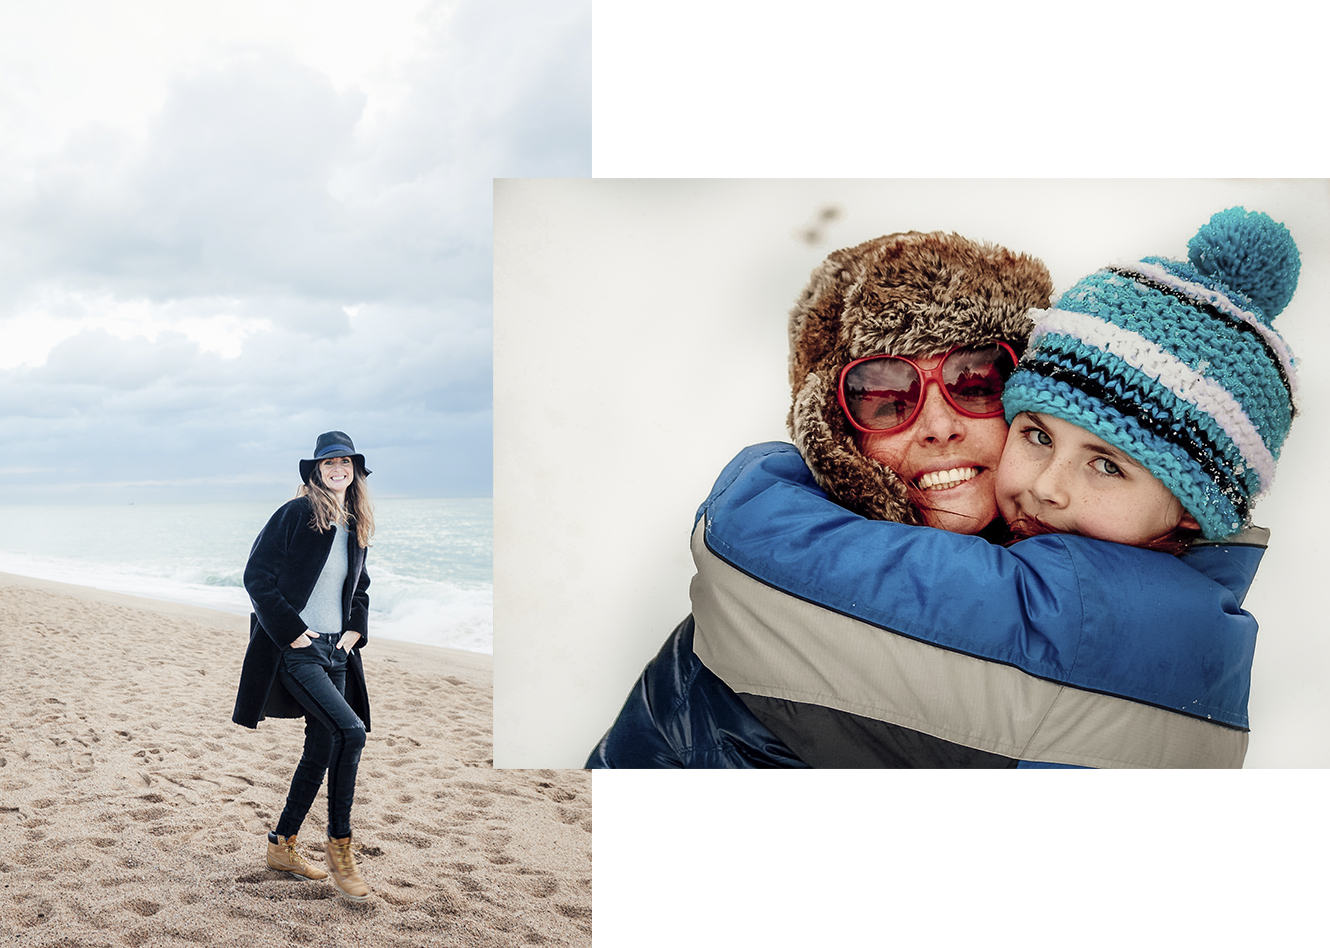 Jo Kemp photographer on the beach (left) Jo Kemp photographer and daughter wearing hats in the snow (right)